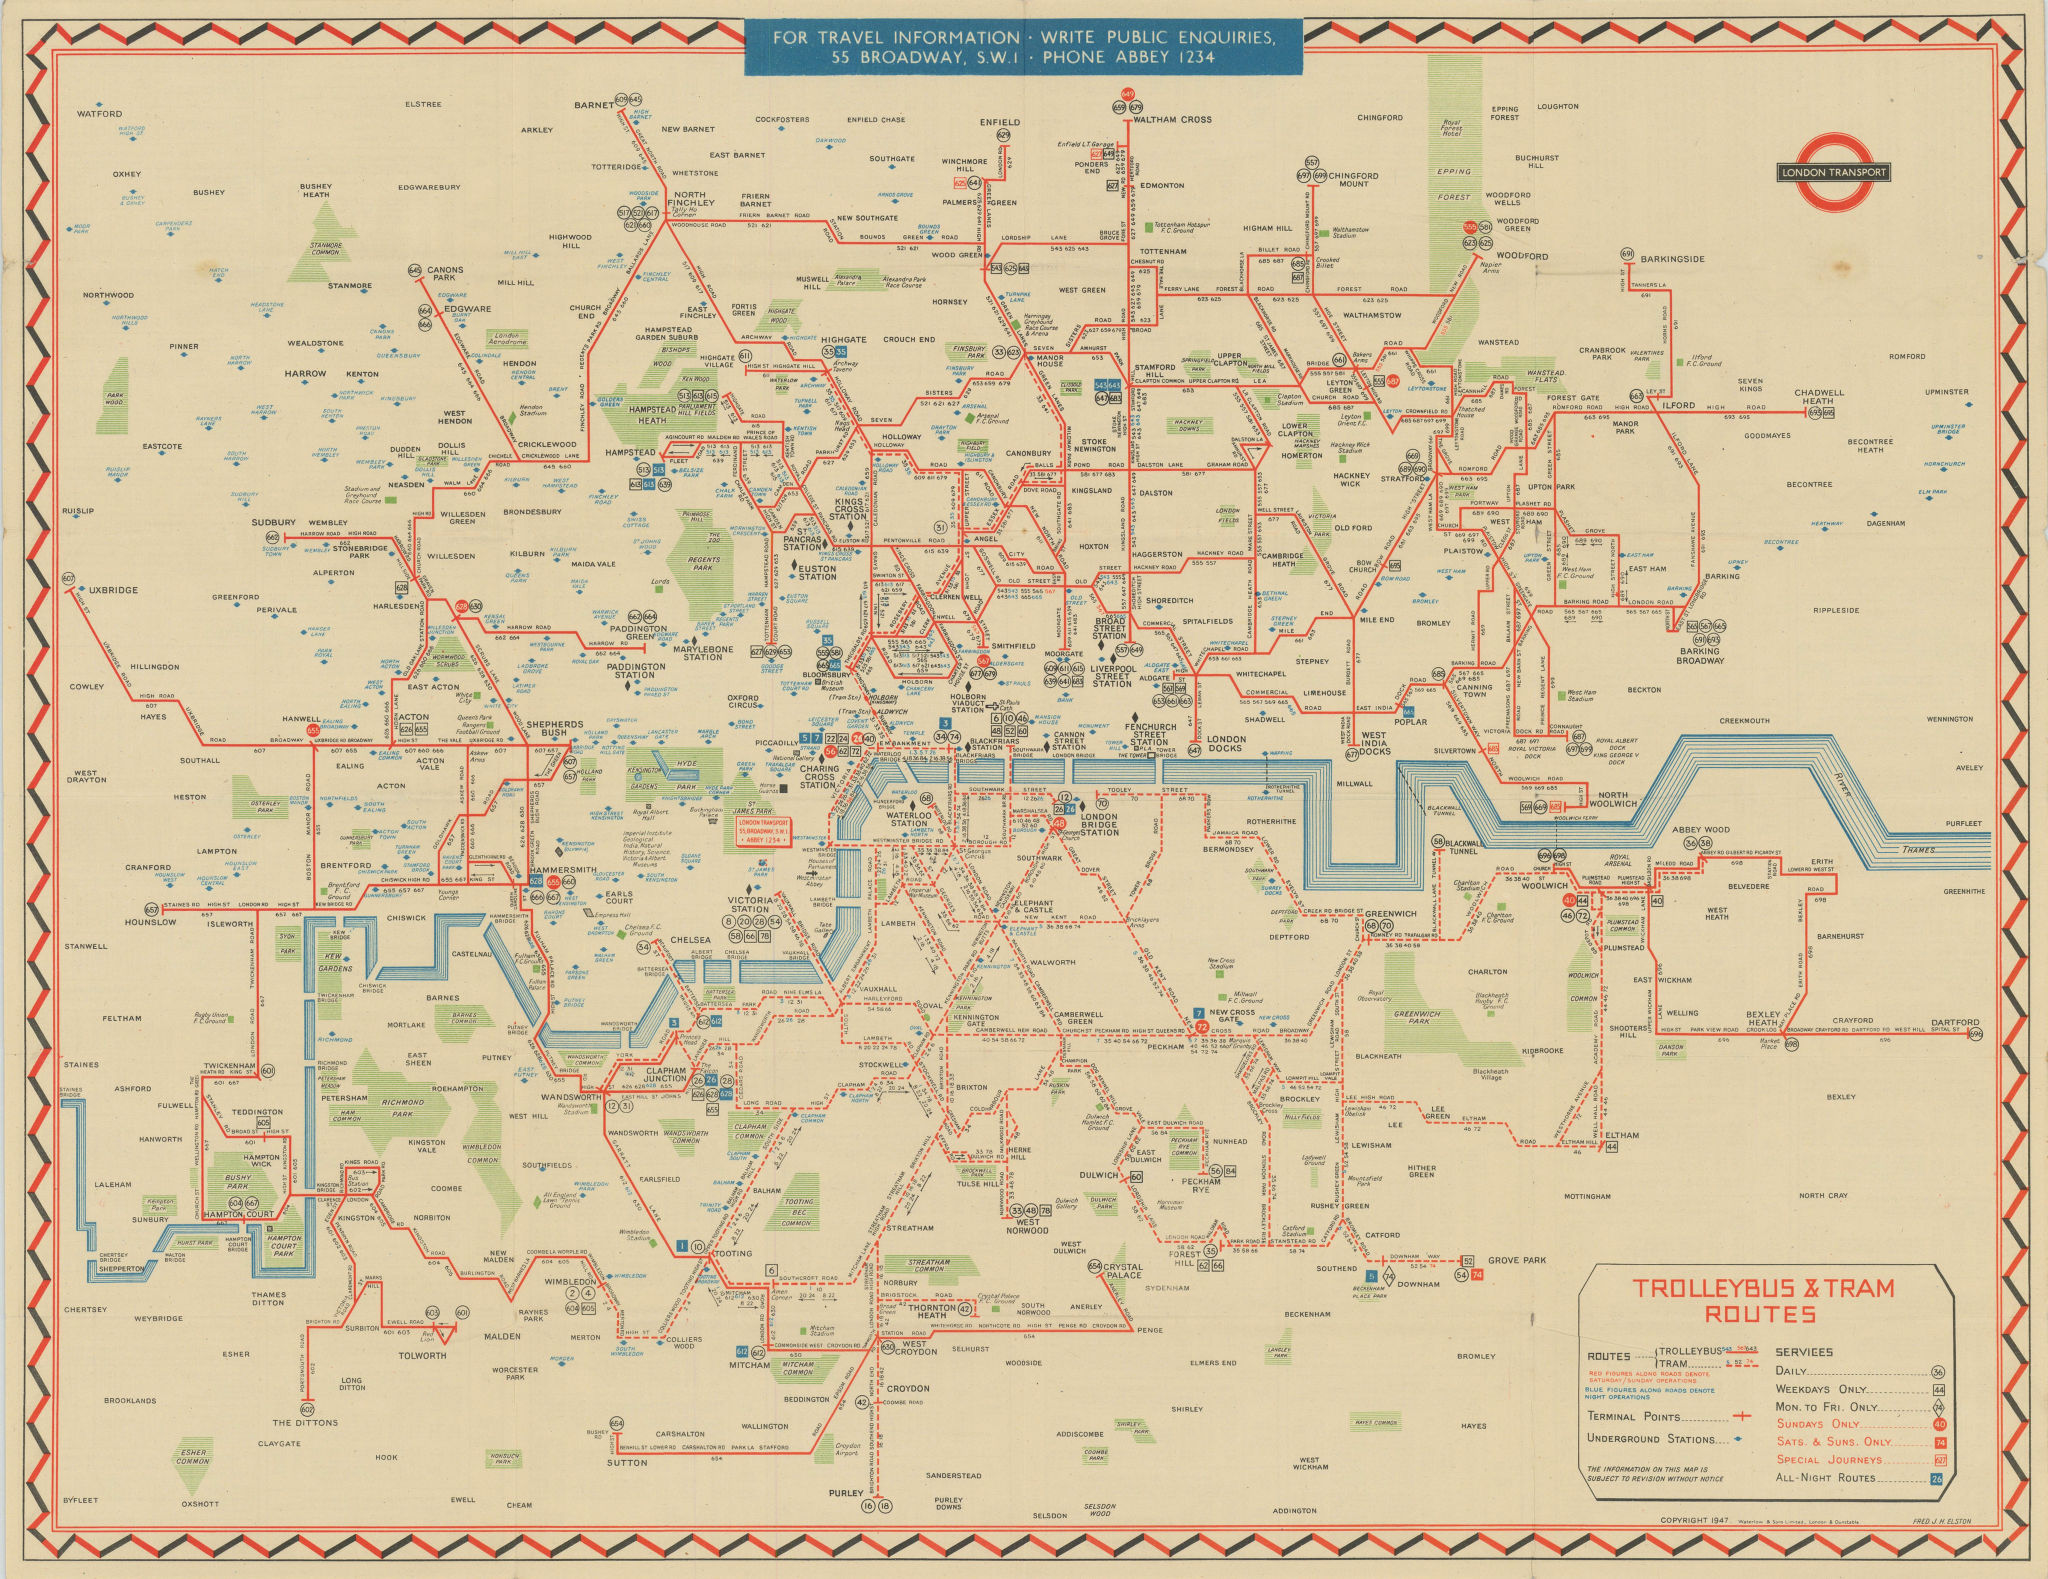 London Transport Trolleybus & Tram map of Routes. ELSTON. #2 1947 old